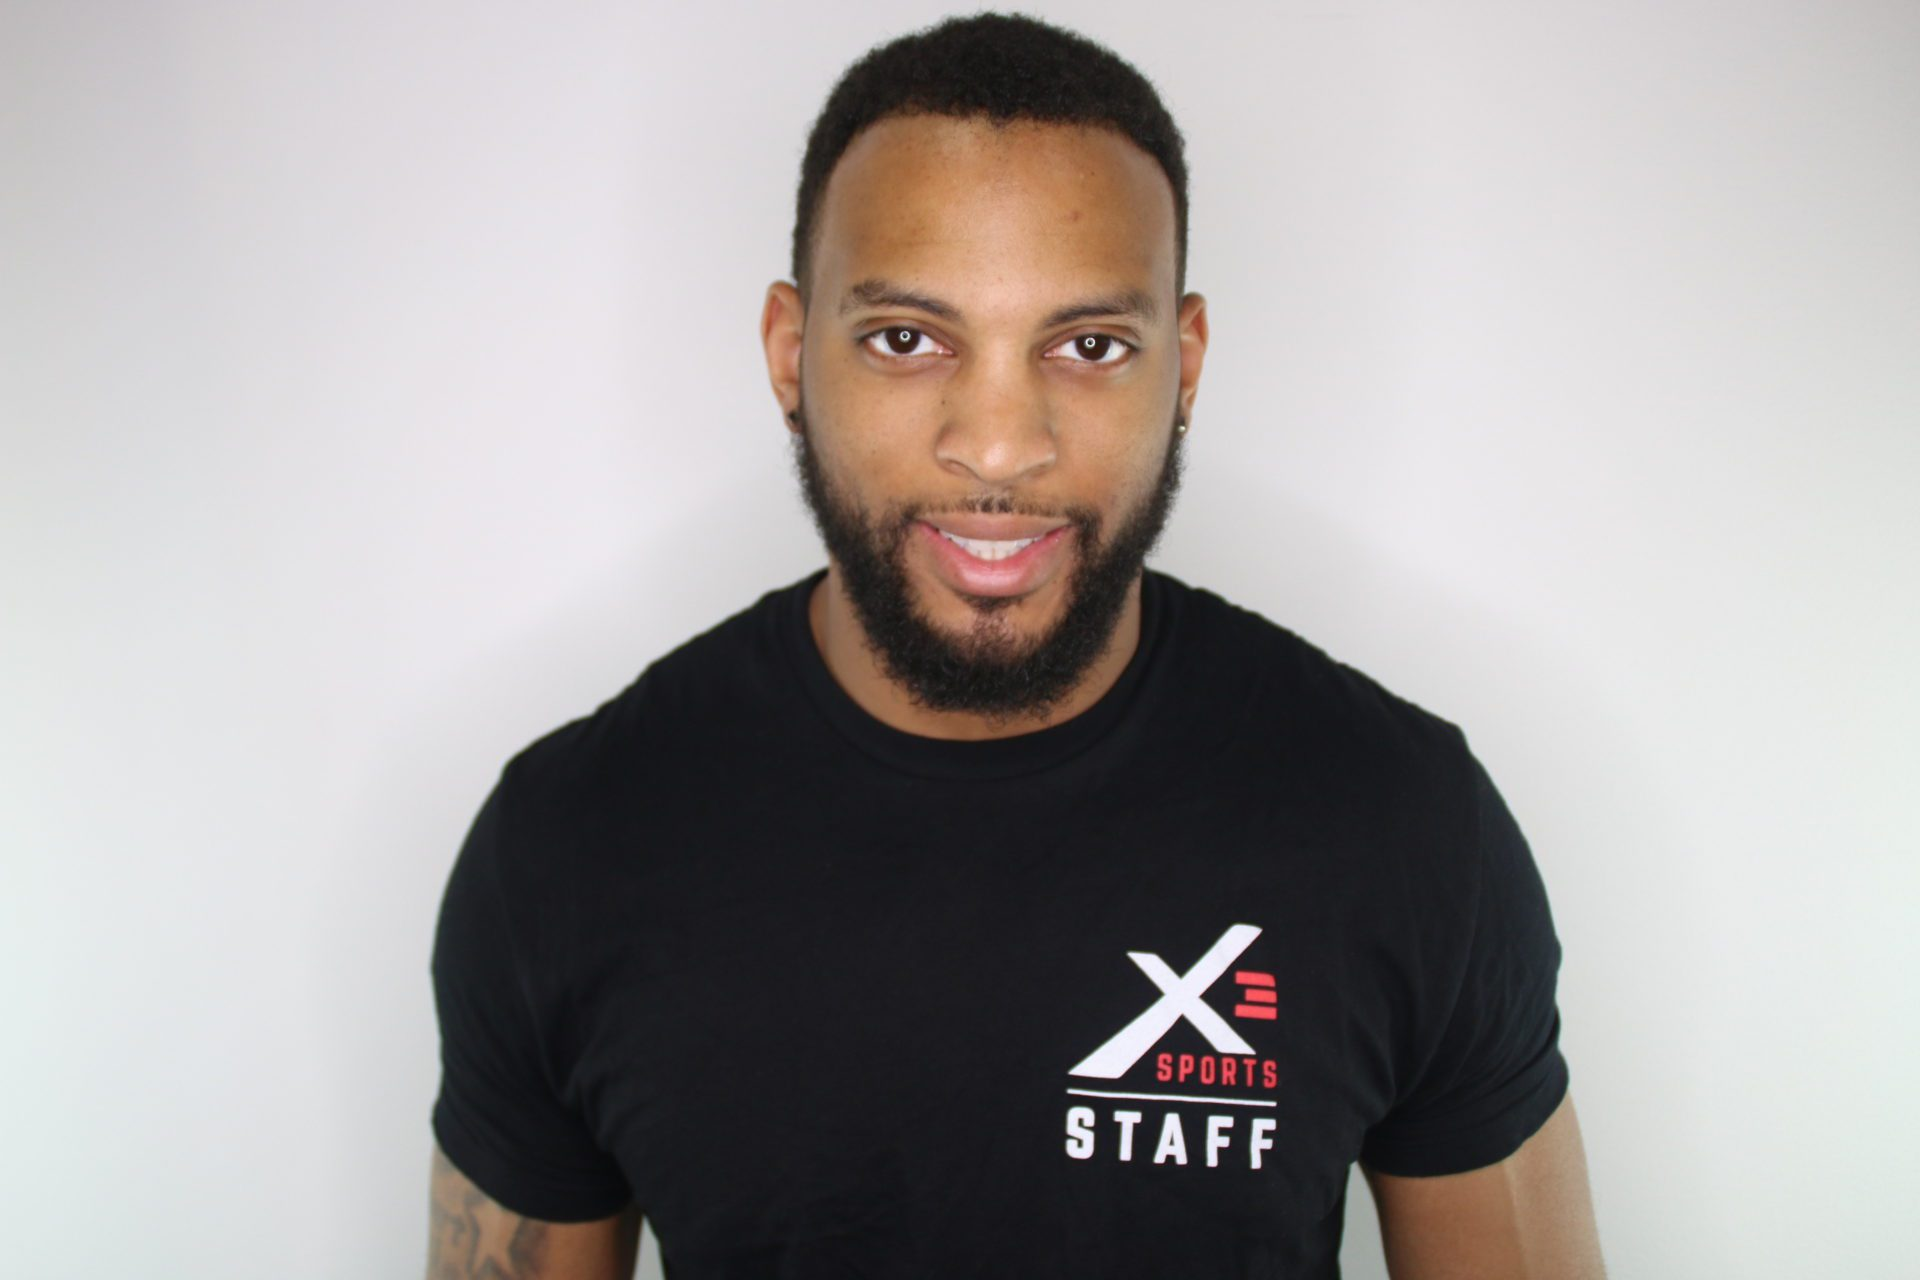 Cody Nash | X3 Sports Employee | X3 Sports